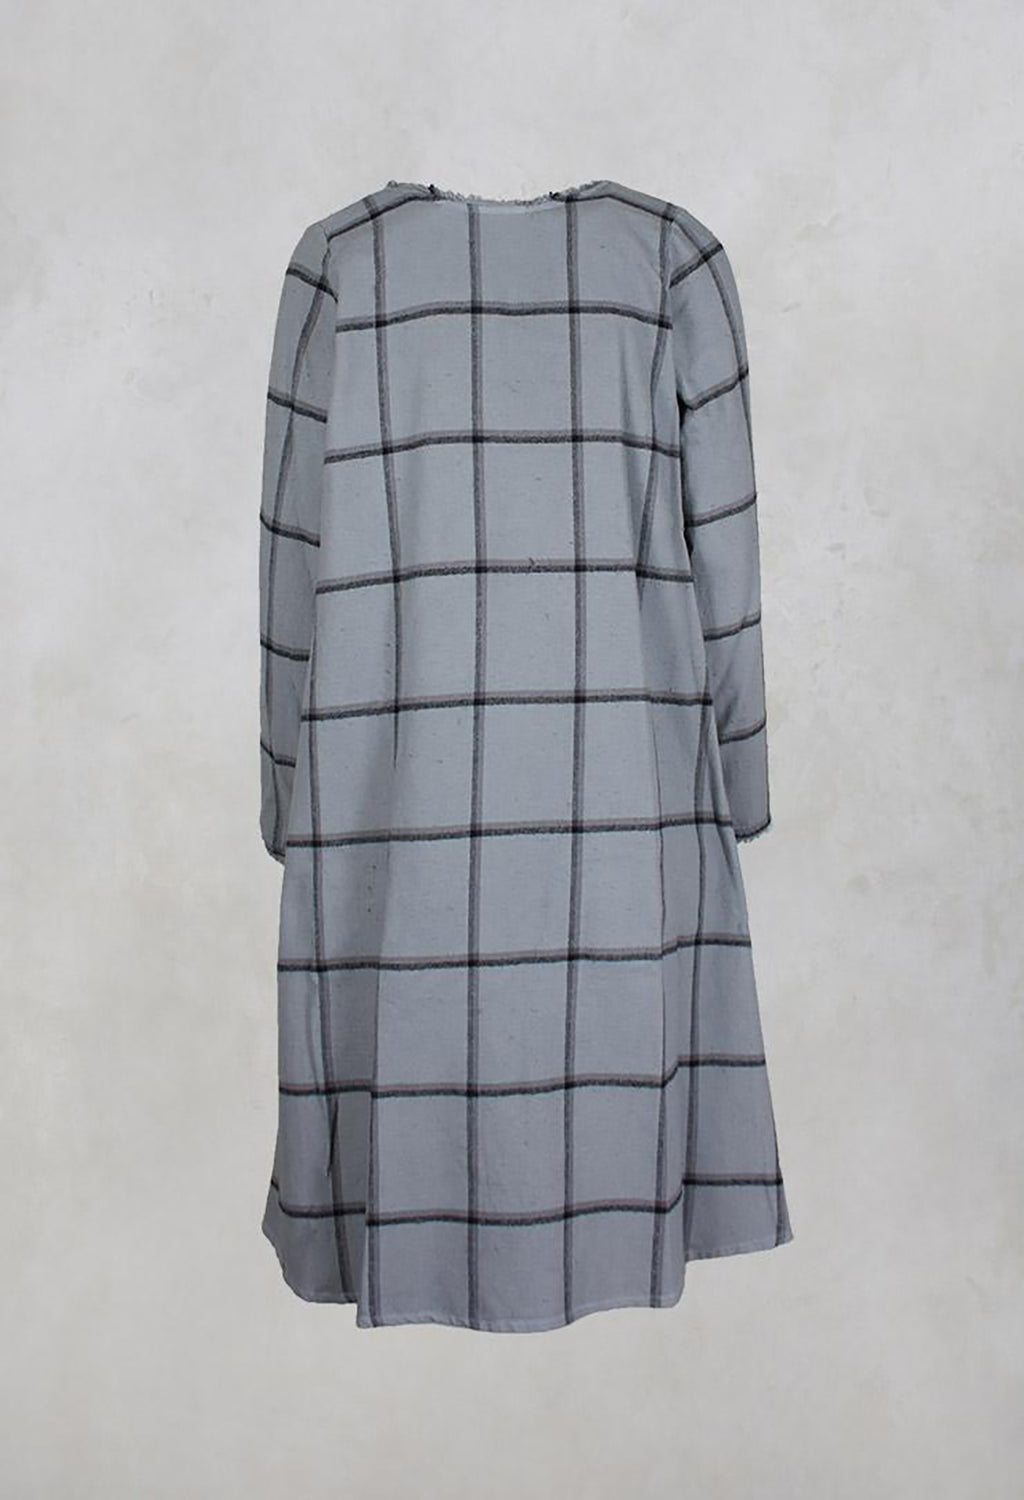 Long Sleeved Checked Dress with Pockets in Silver